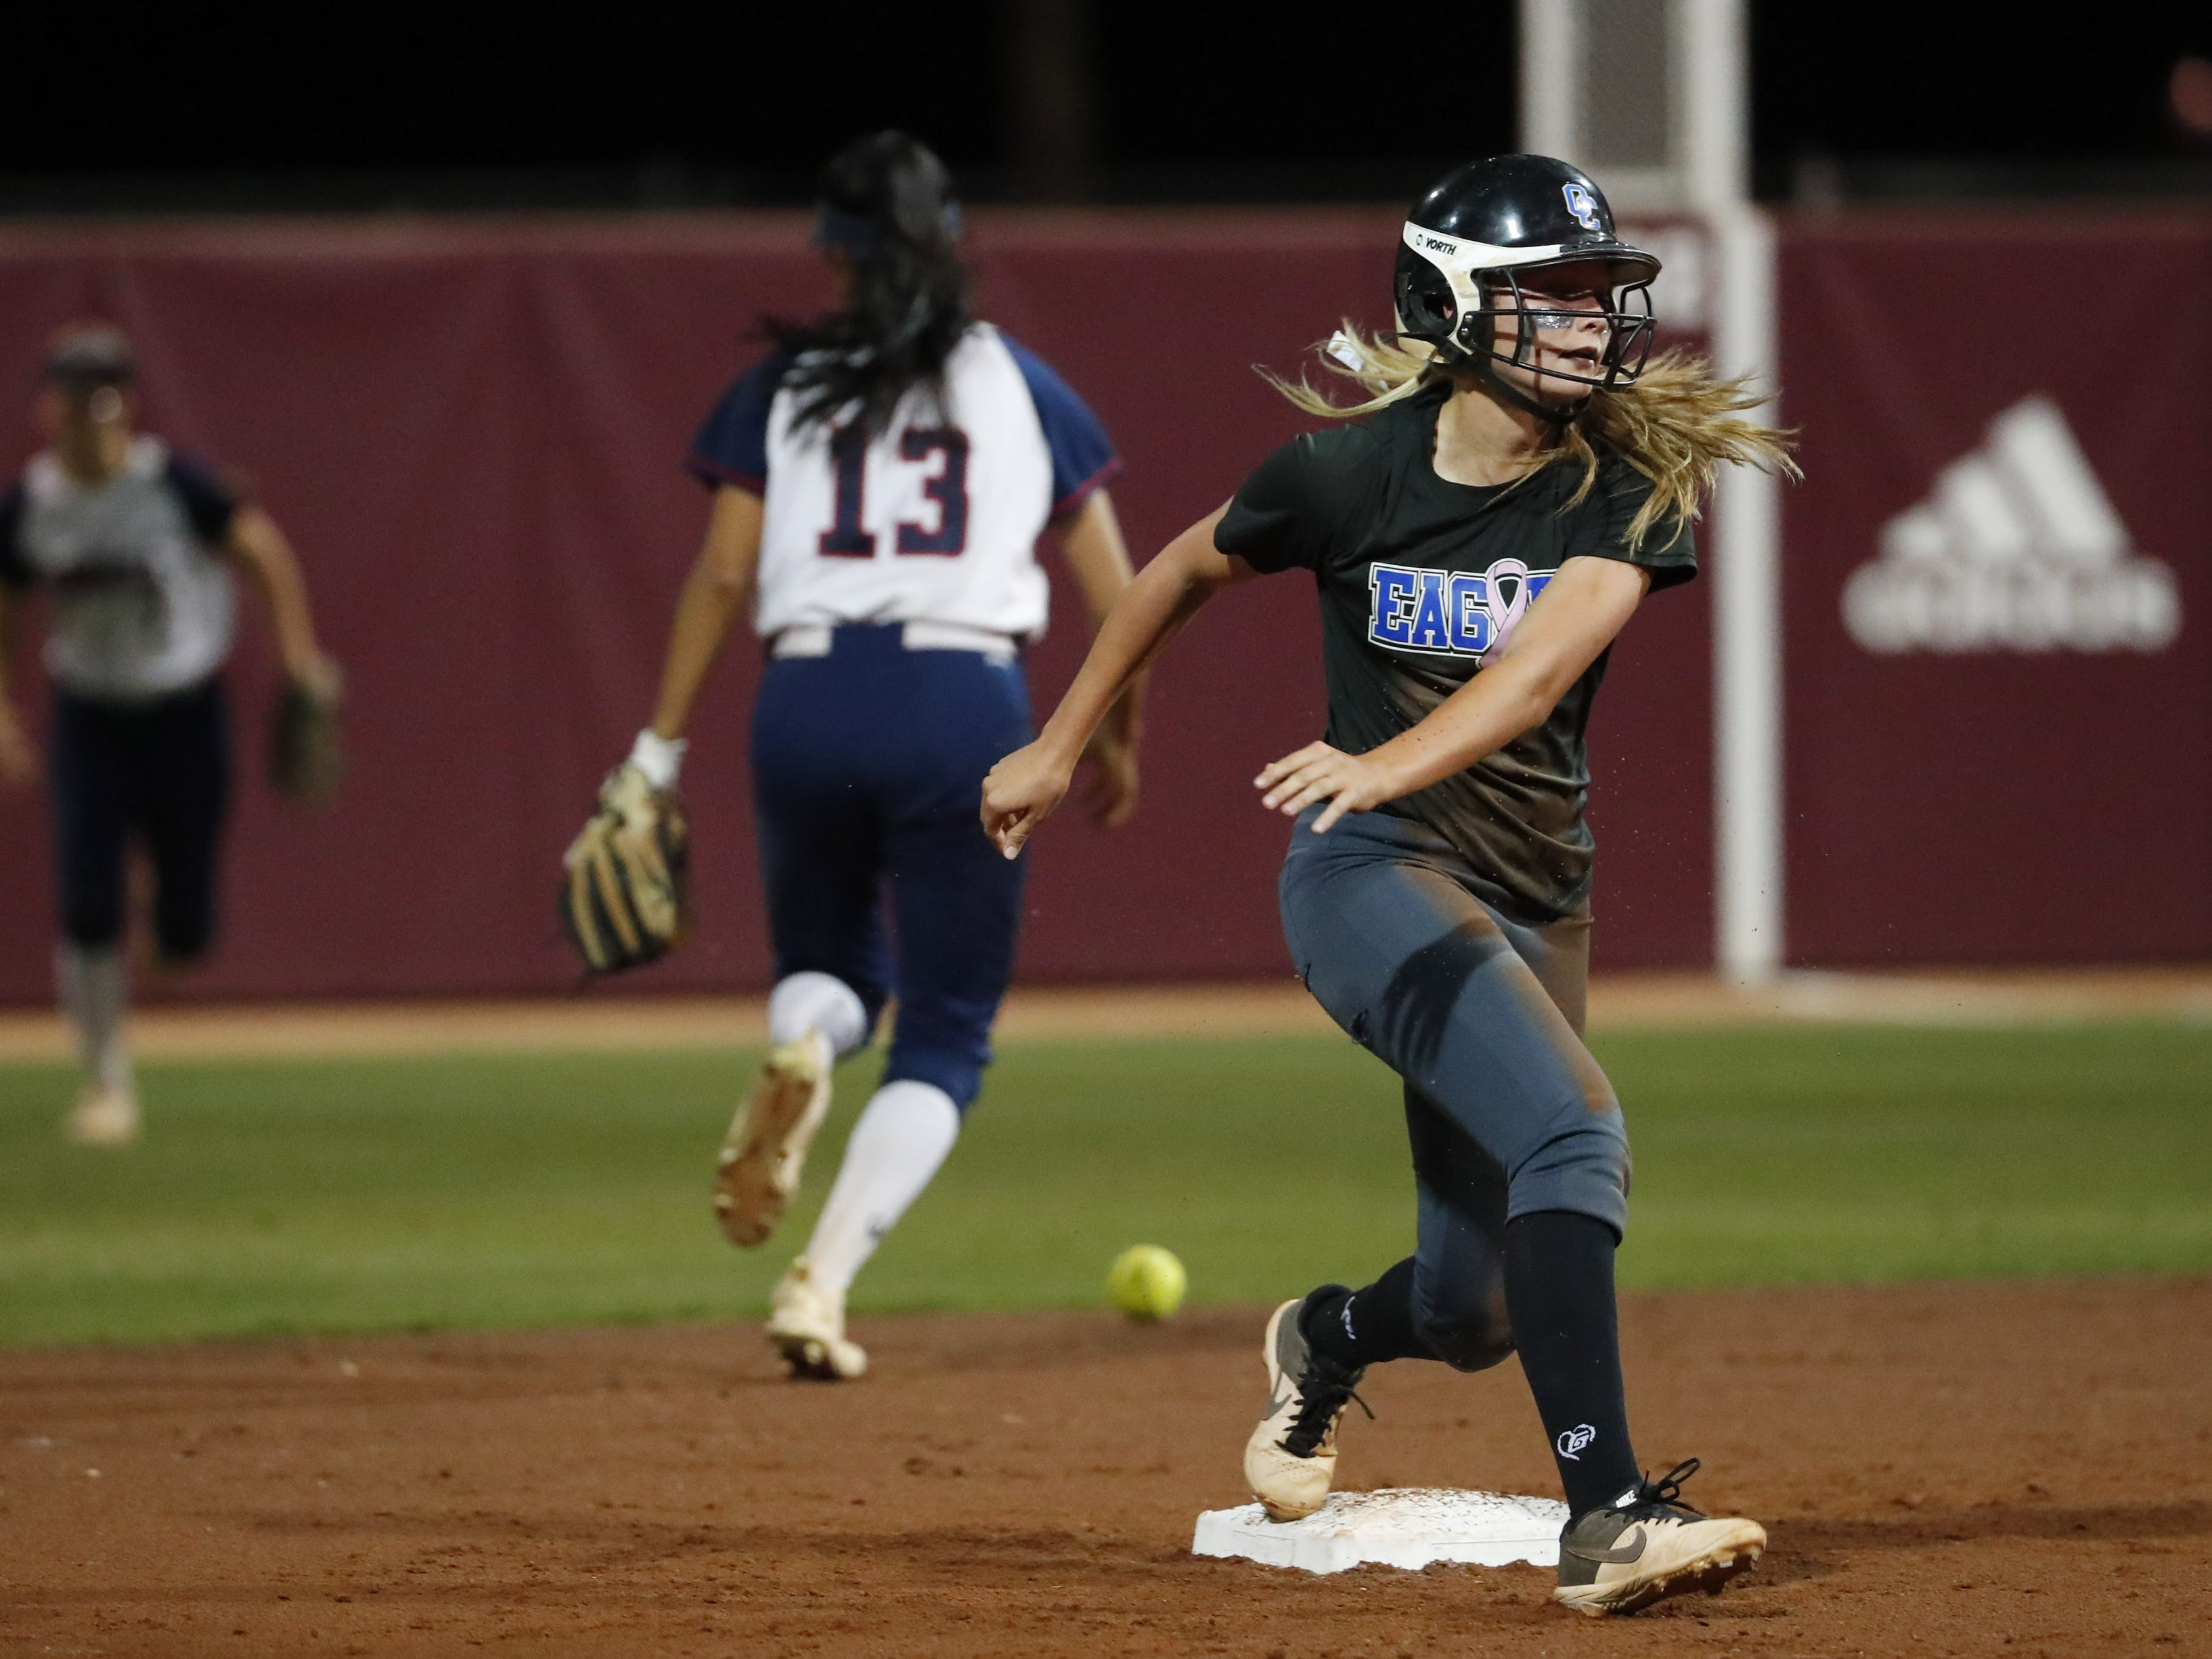 Sandra Day O'Connor third baseman Rylee Holtorf (5) stands on second base after a steal against Pinnacle during the 6A State Softball Championship in Tempe, Ariz. May 13, 2019.